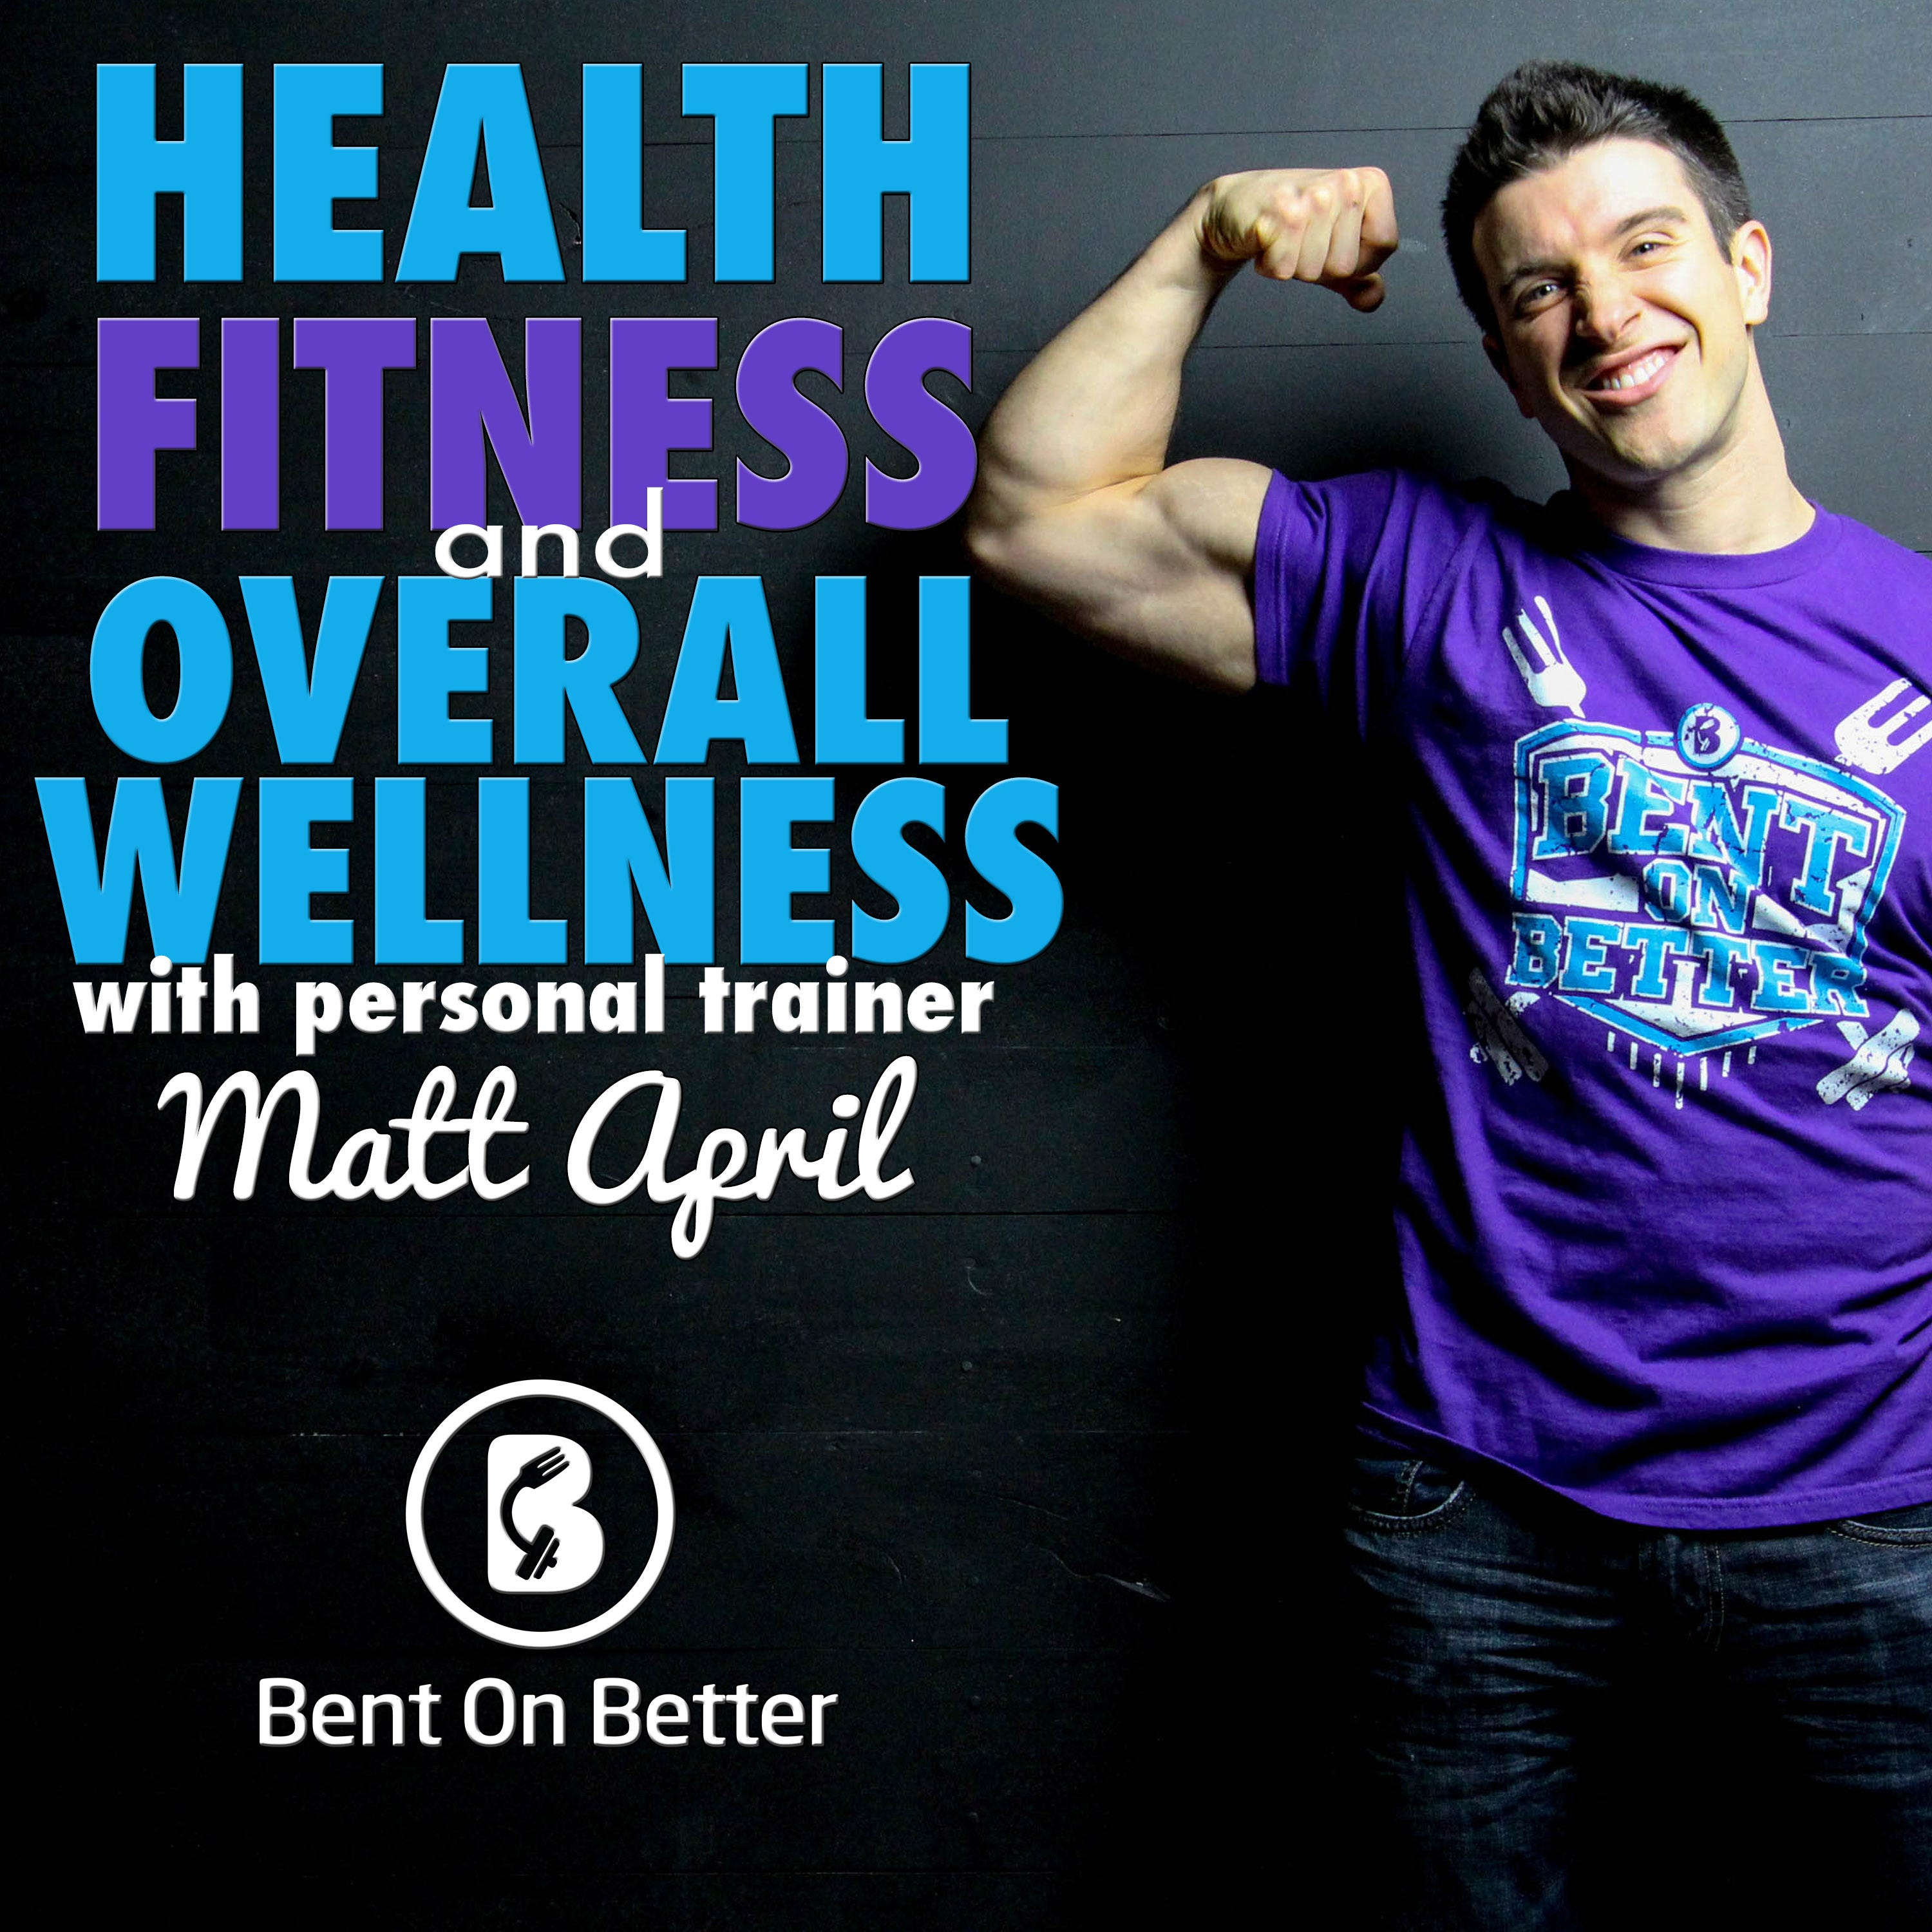 Bent On Better: Health | Fitness | Overall Wellness